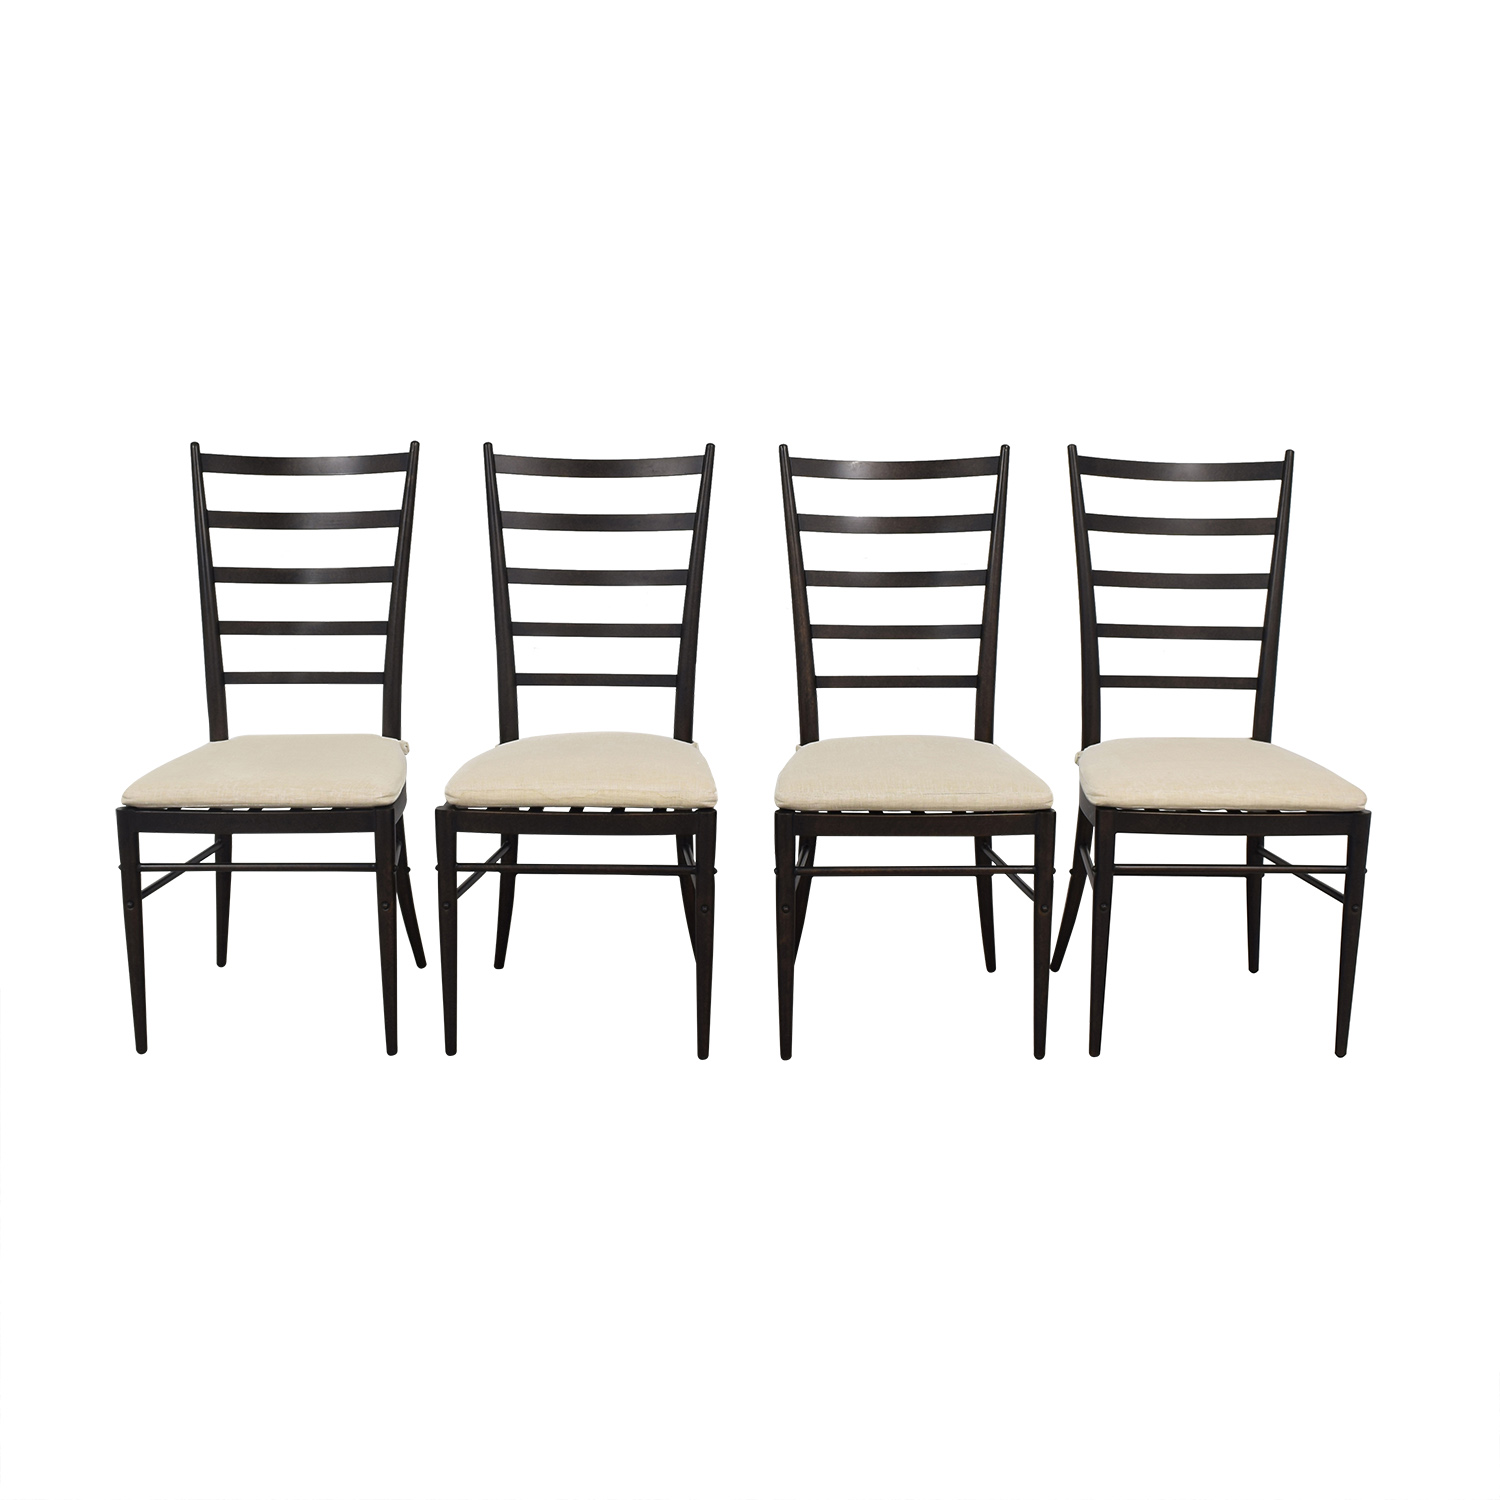 Crate & Barrel Crate & Barrel Ladder Back Dining Chairs